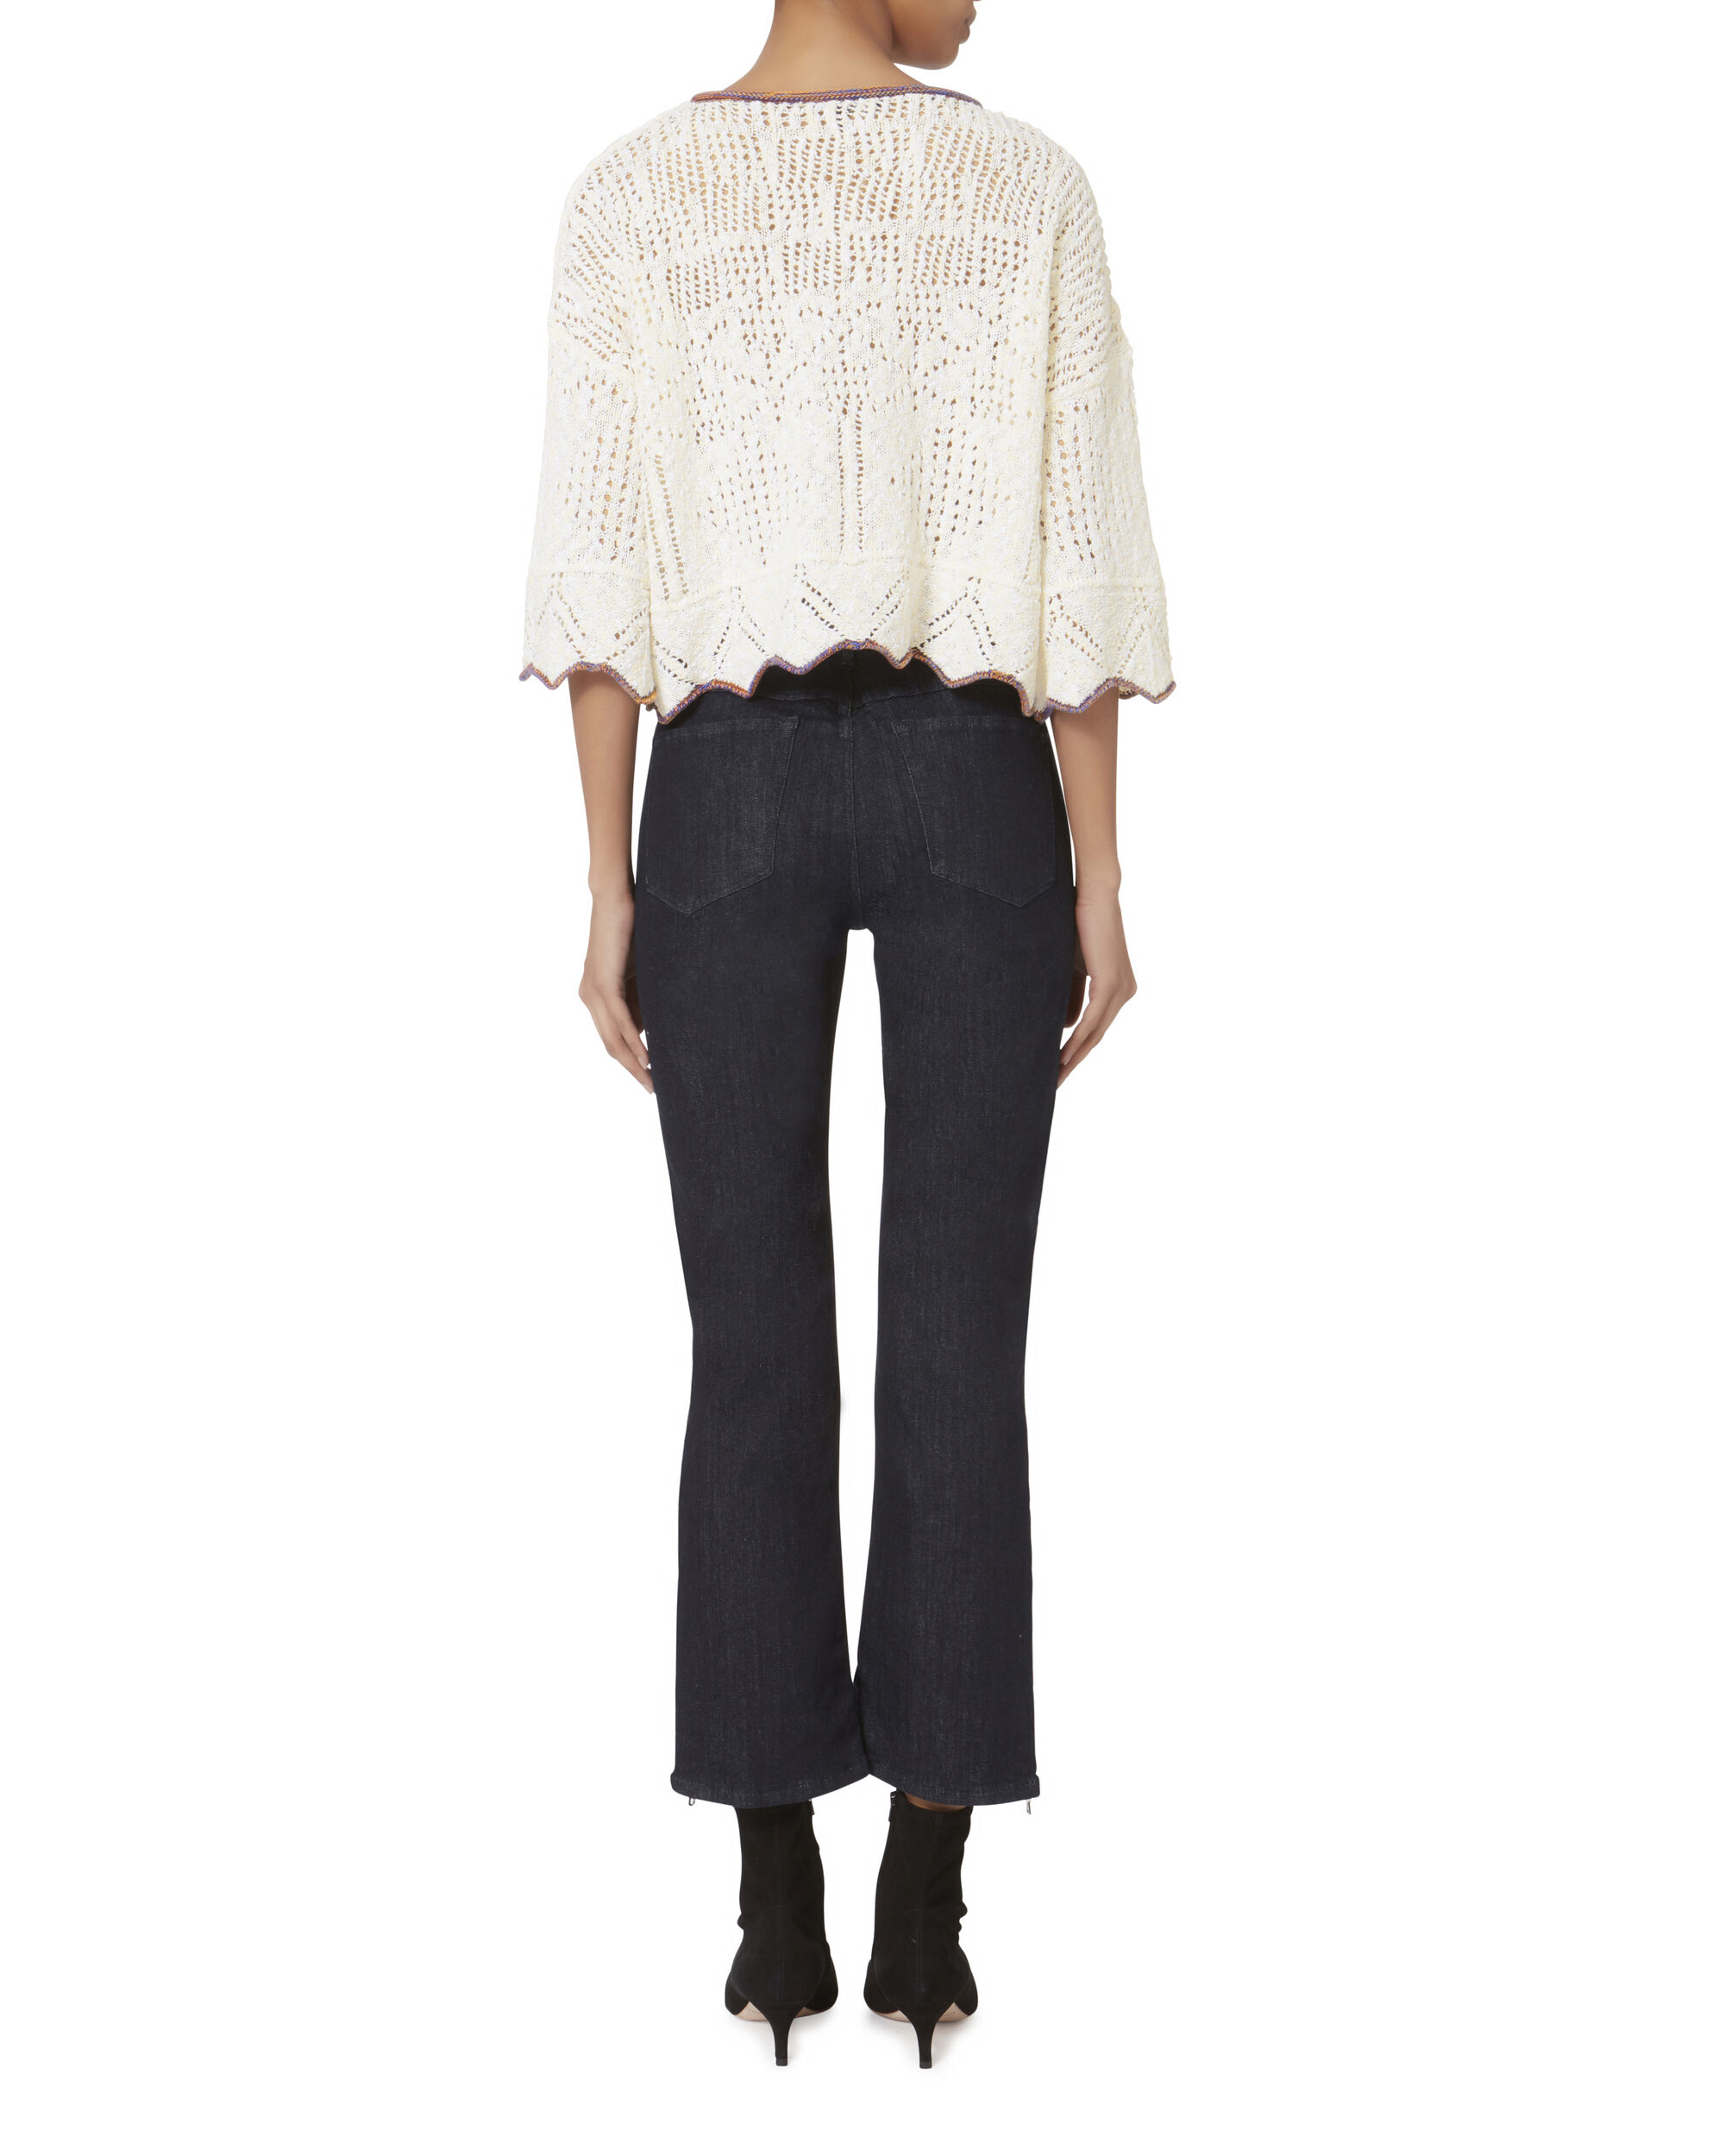 Pointelle Knit Cropped Pullover, IVORY, hi-res